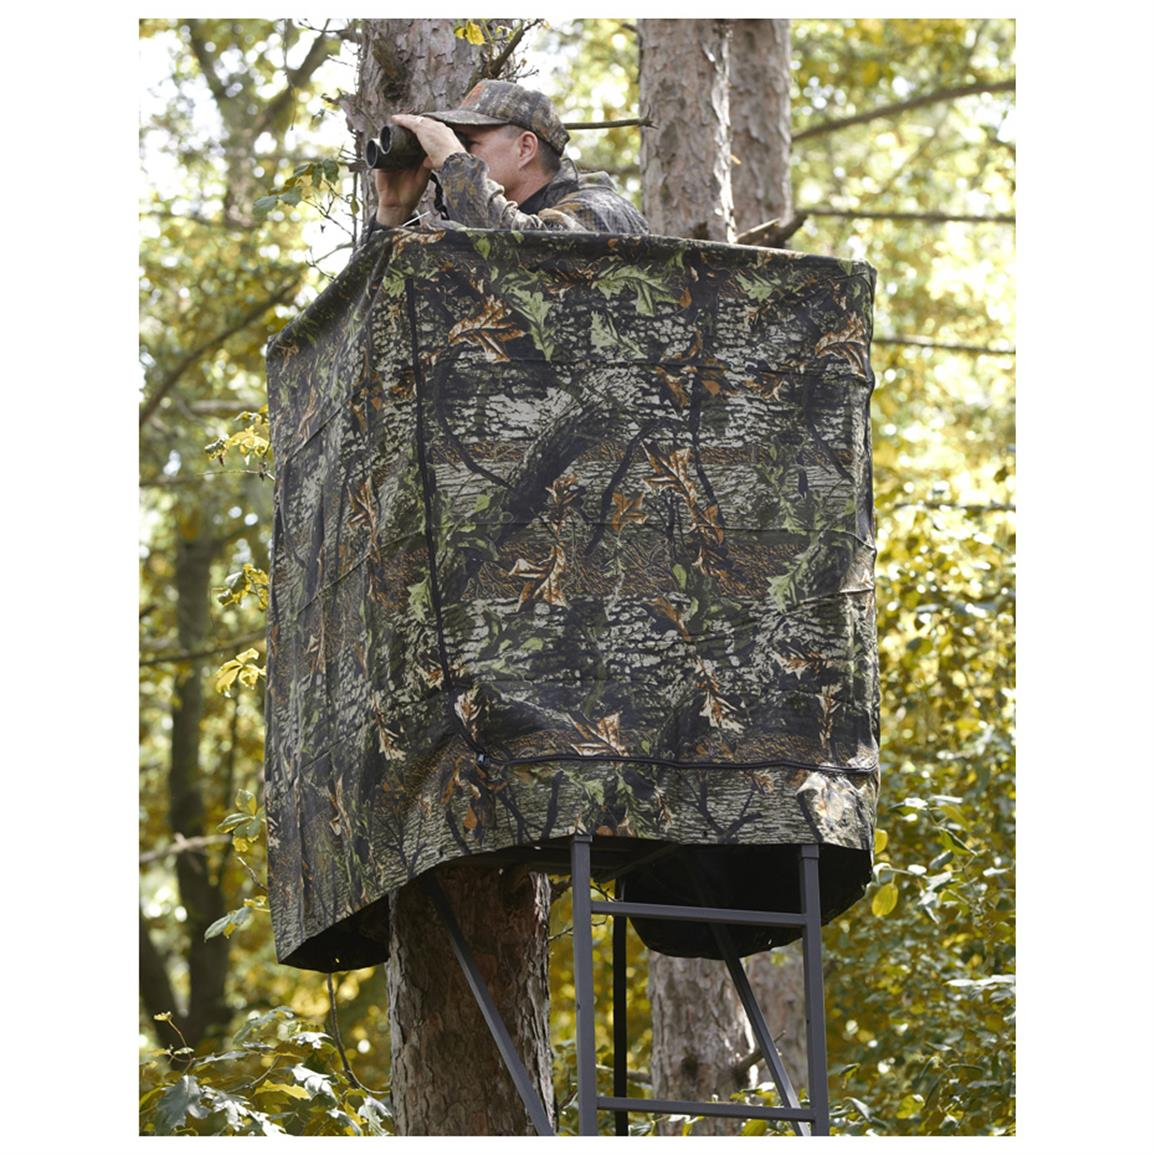 Universal Tree Stand Blind - 614643, Tree Stand Accessories at Sportsman's Guide